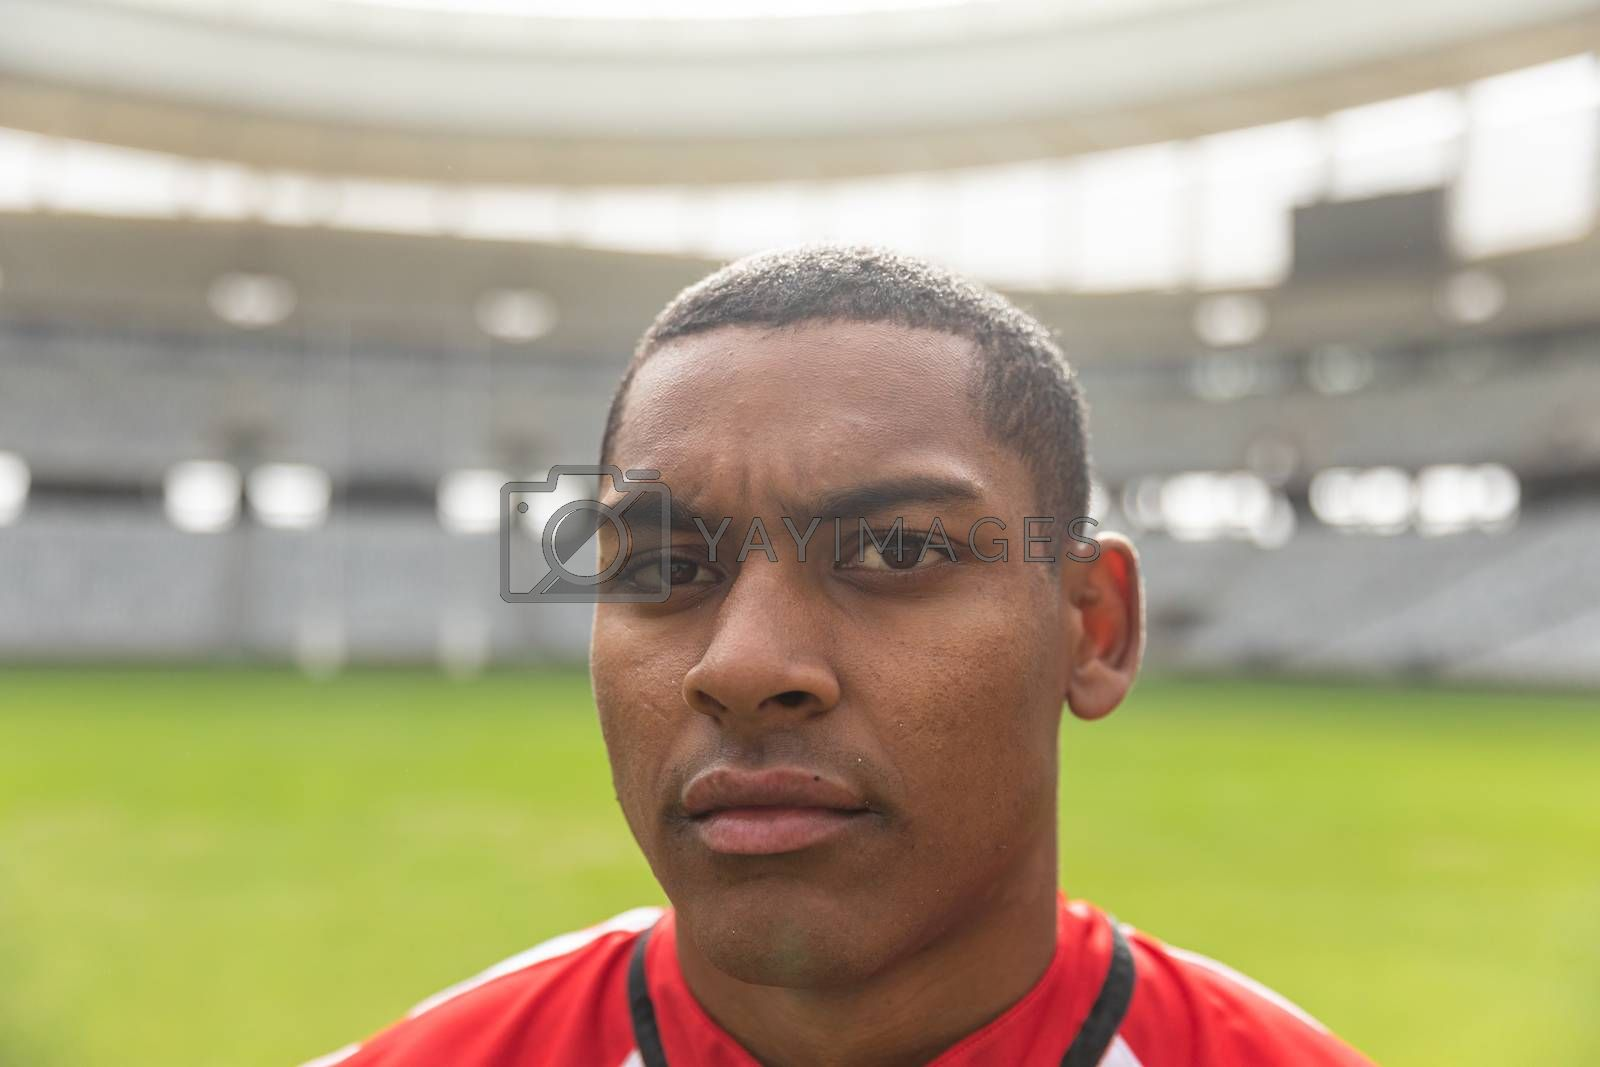 Portrait close up of handsome African American rugby player looking at camera in the stadium on sunny day.